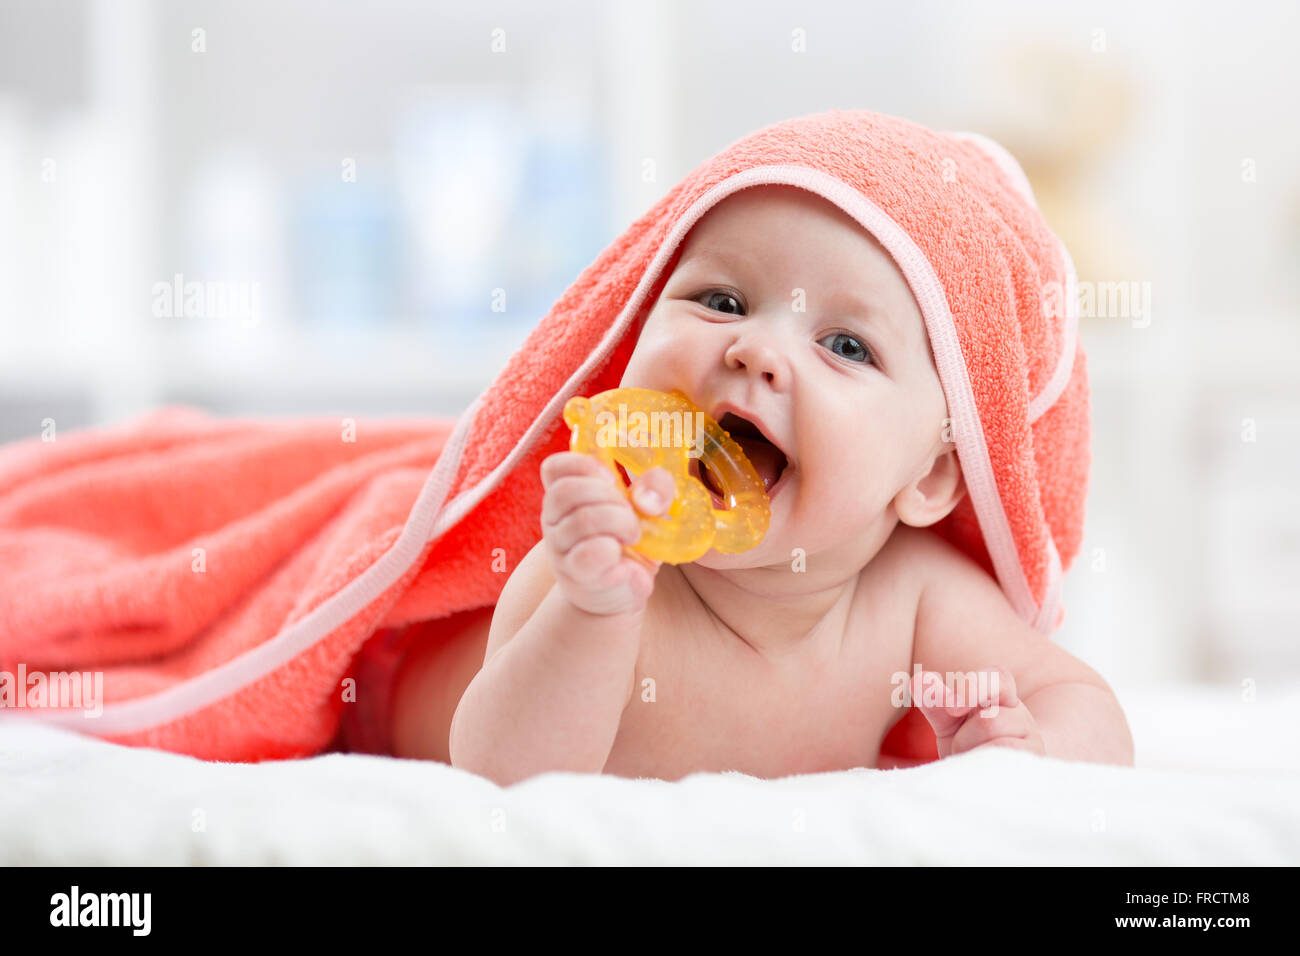 Cute baby with teether under a hooded towel after bath - Stock Image